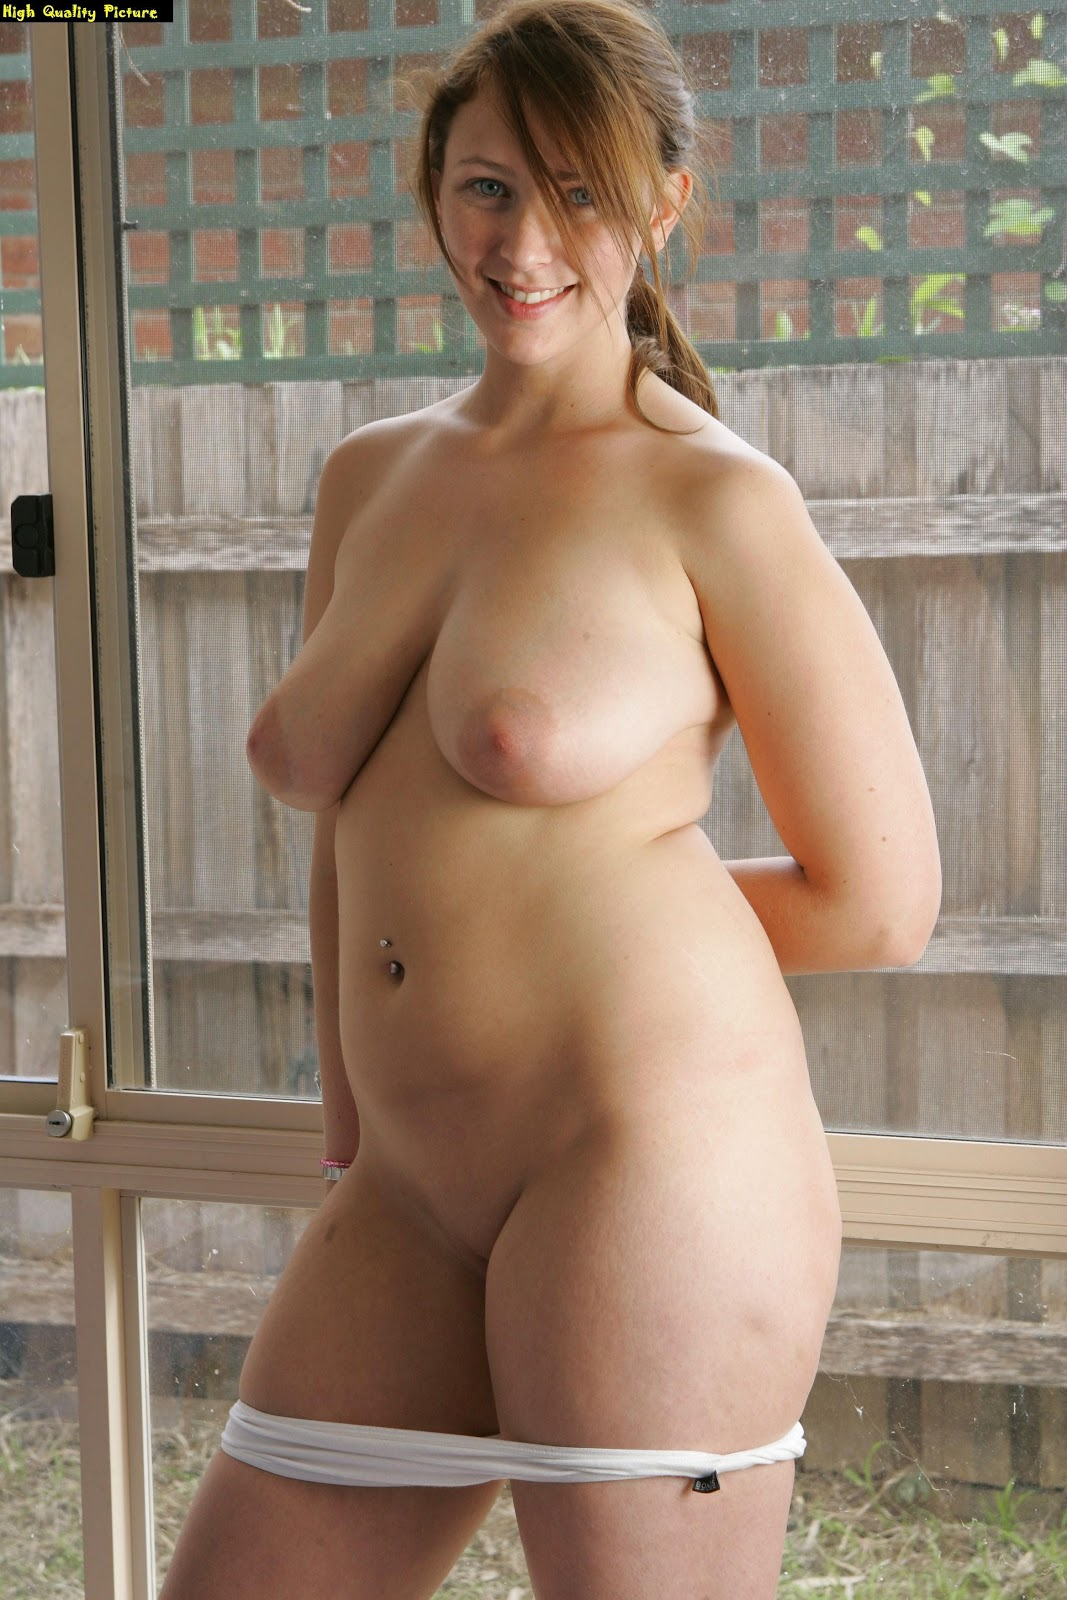 Maria next door nude